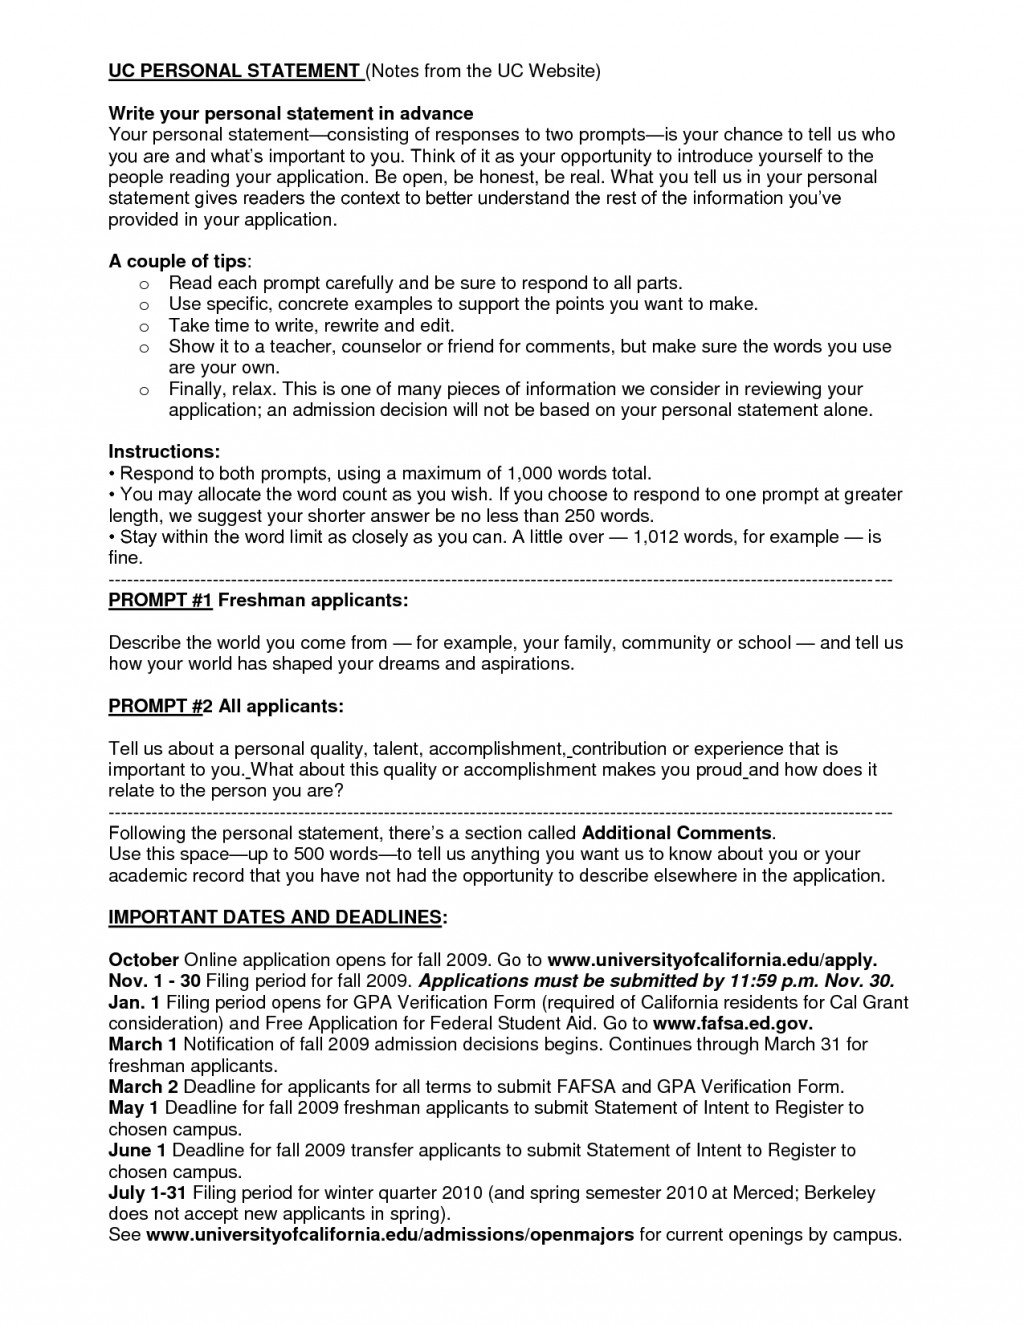 006 Uw Application Essay Example College New Picture Incredible Madison Examples Transfer Large